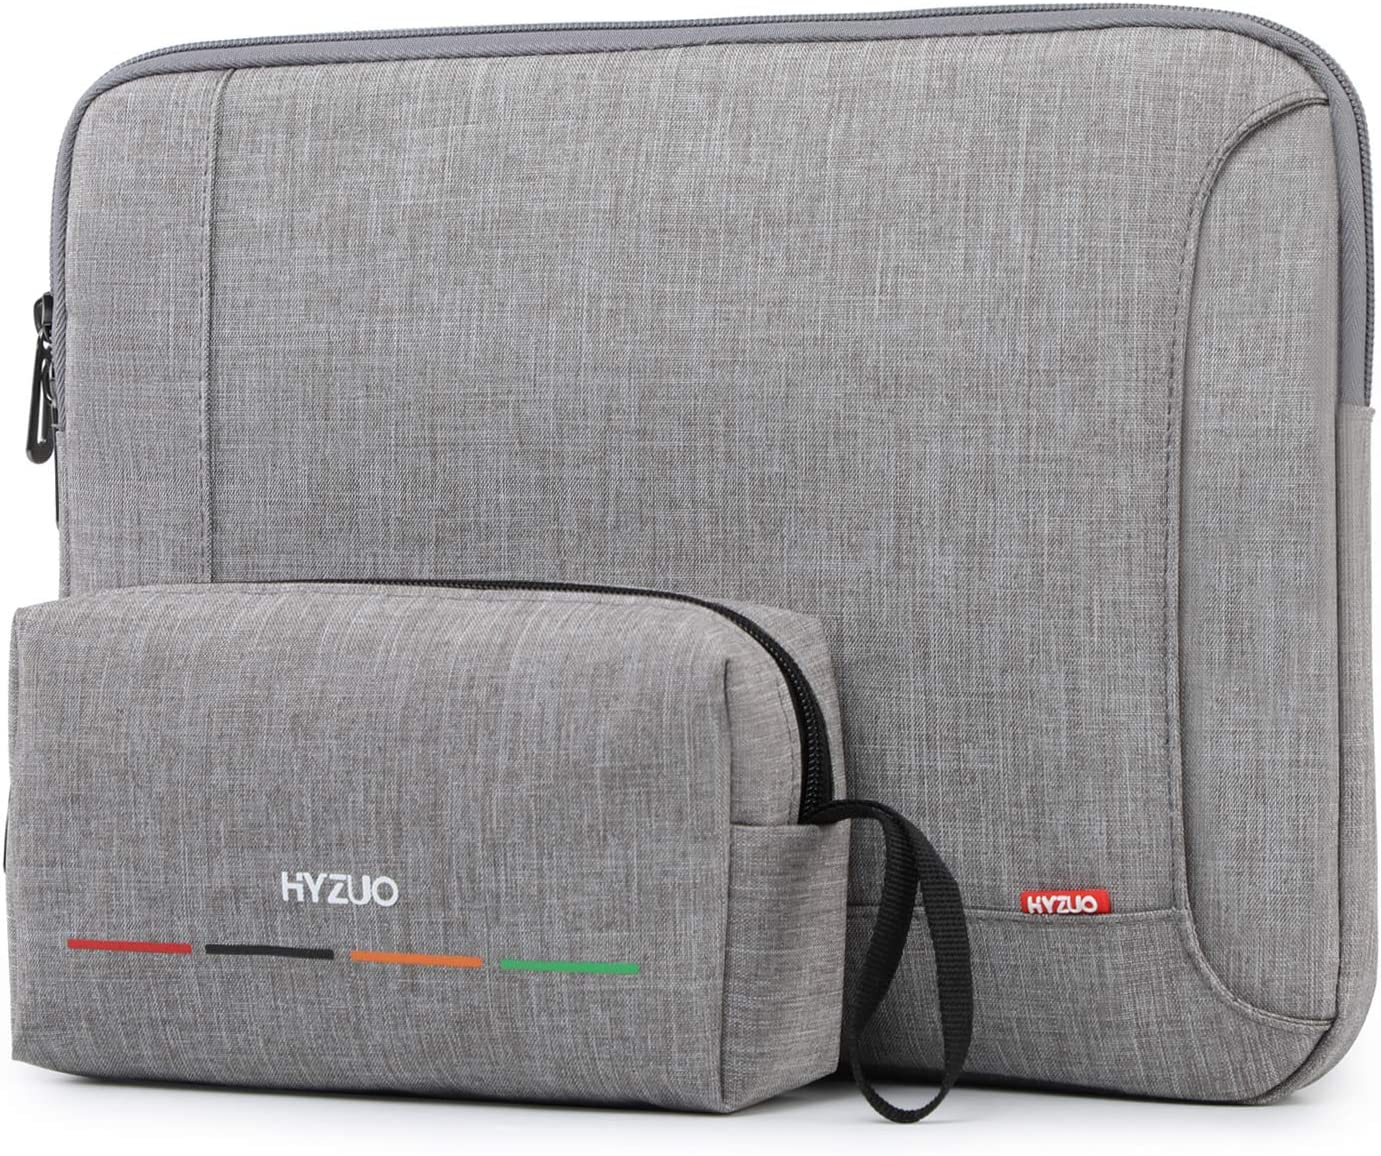 HYZUO 14 Inch Laptop Sleeve Case Compatible with IdeaPad 3 14/HP EliteBook 14/HP Pavilion 14/Surface Laptop 15/Acer Swift 3 14/HP Stream 14/Asus VivoBook 14/Huawei MateBook D 14, Light Gray